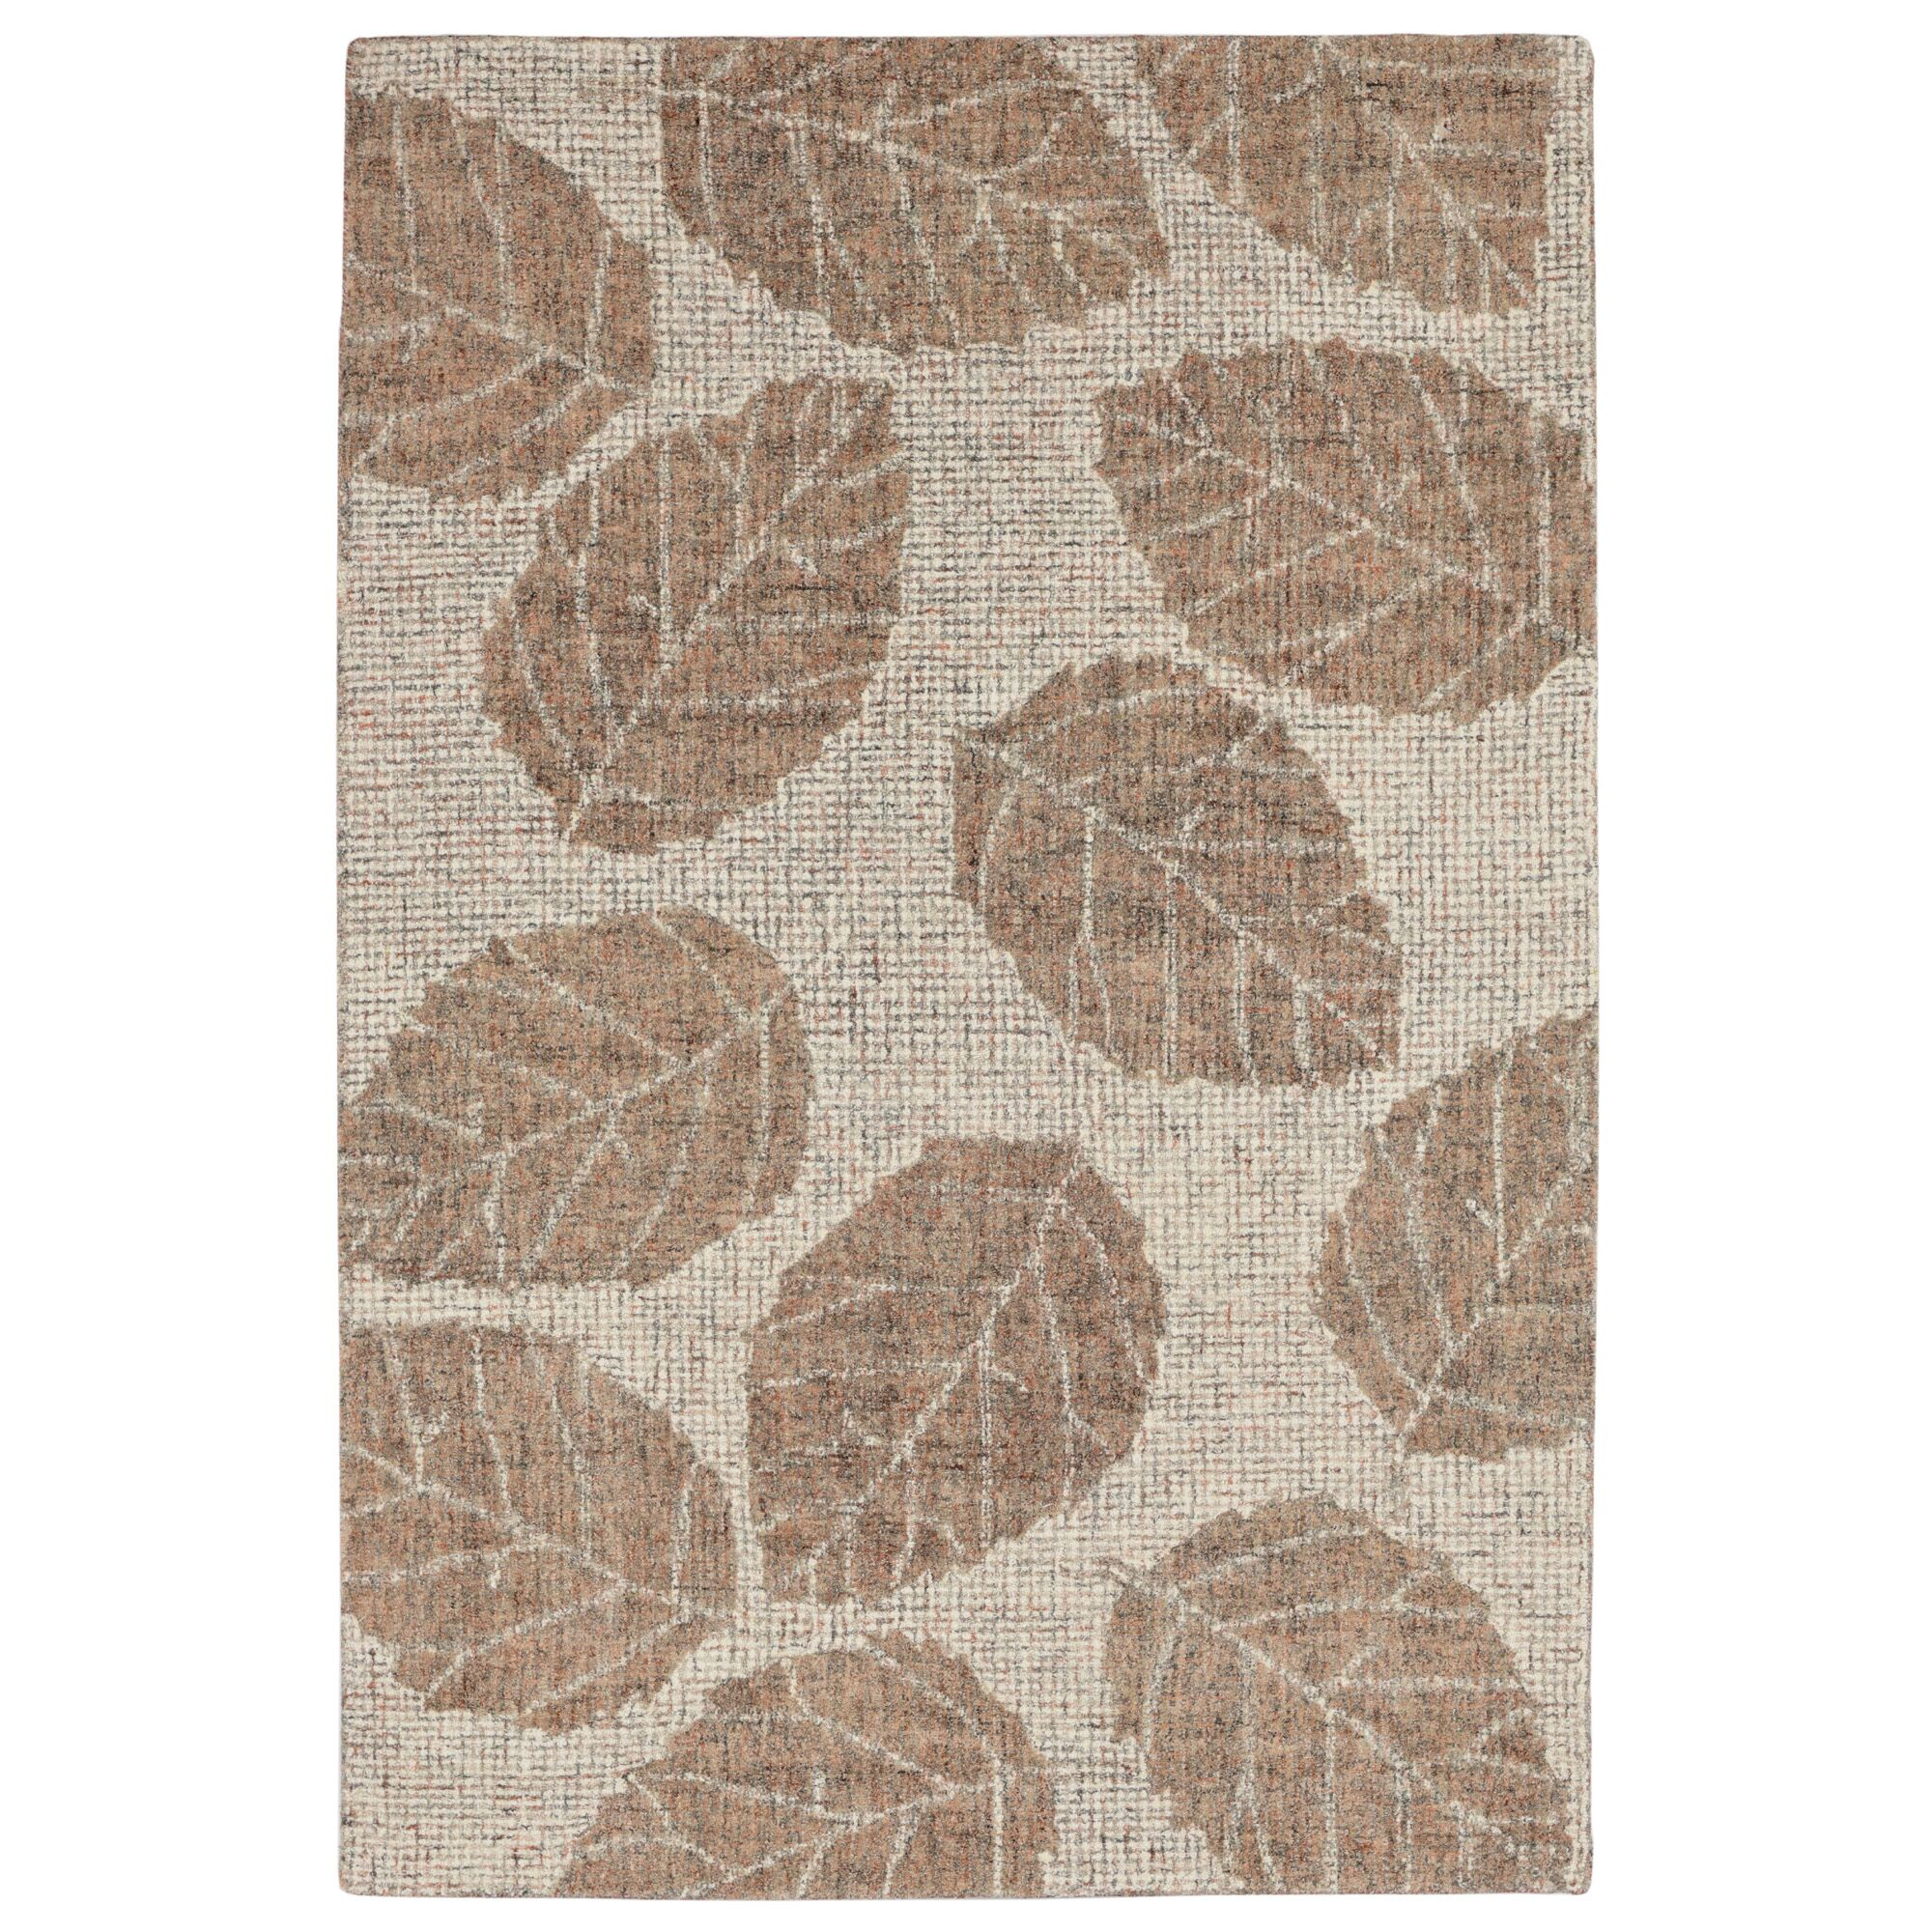 Claremont Leaf Hand-Tufted Wool Khaki/Brown Area Rug Rug Size: Rectangle 3'6